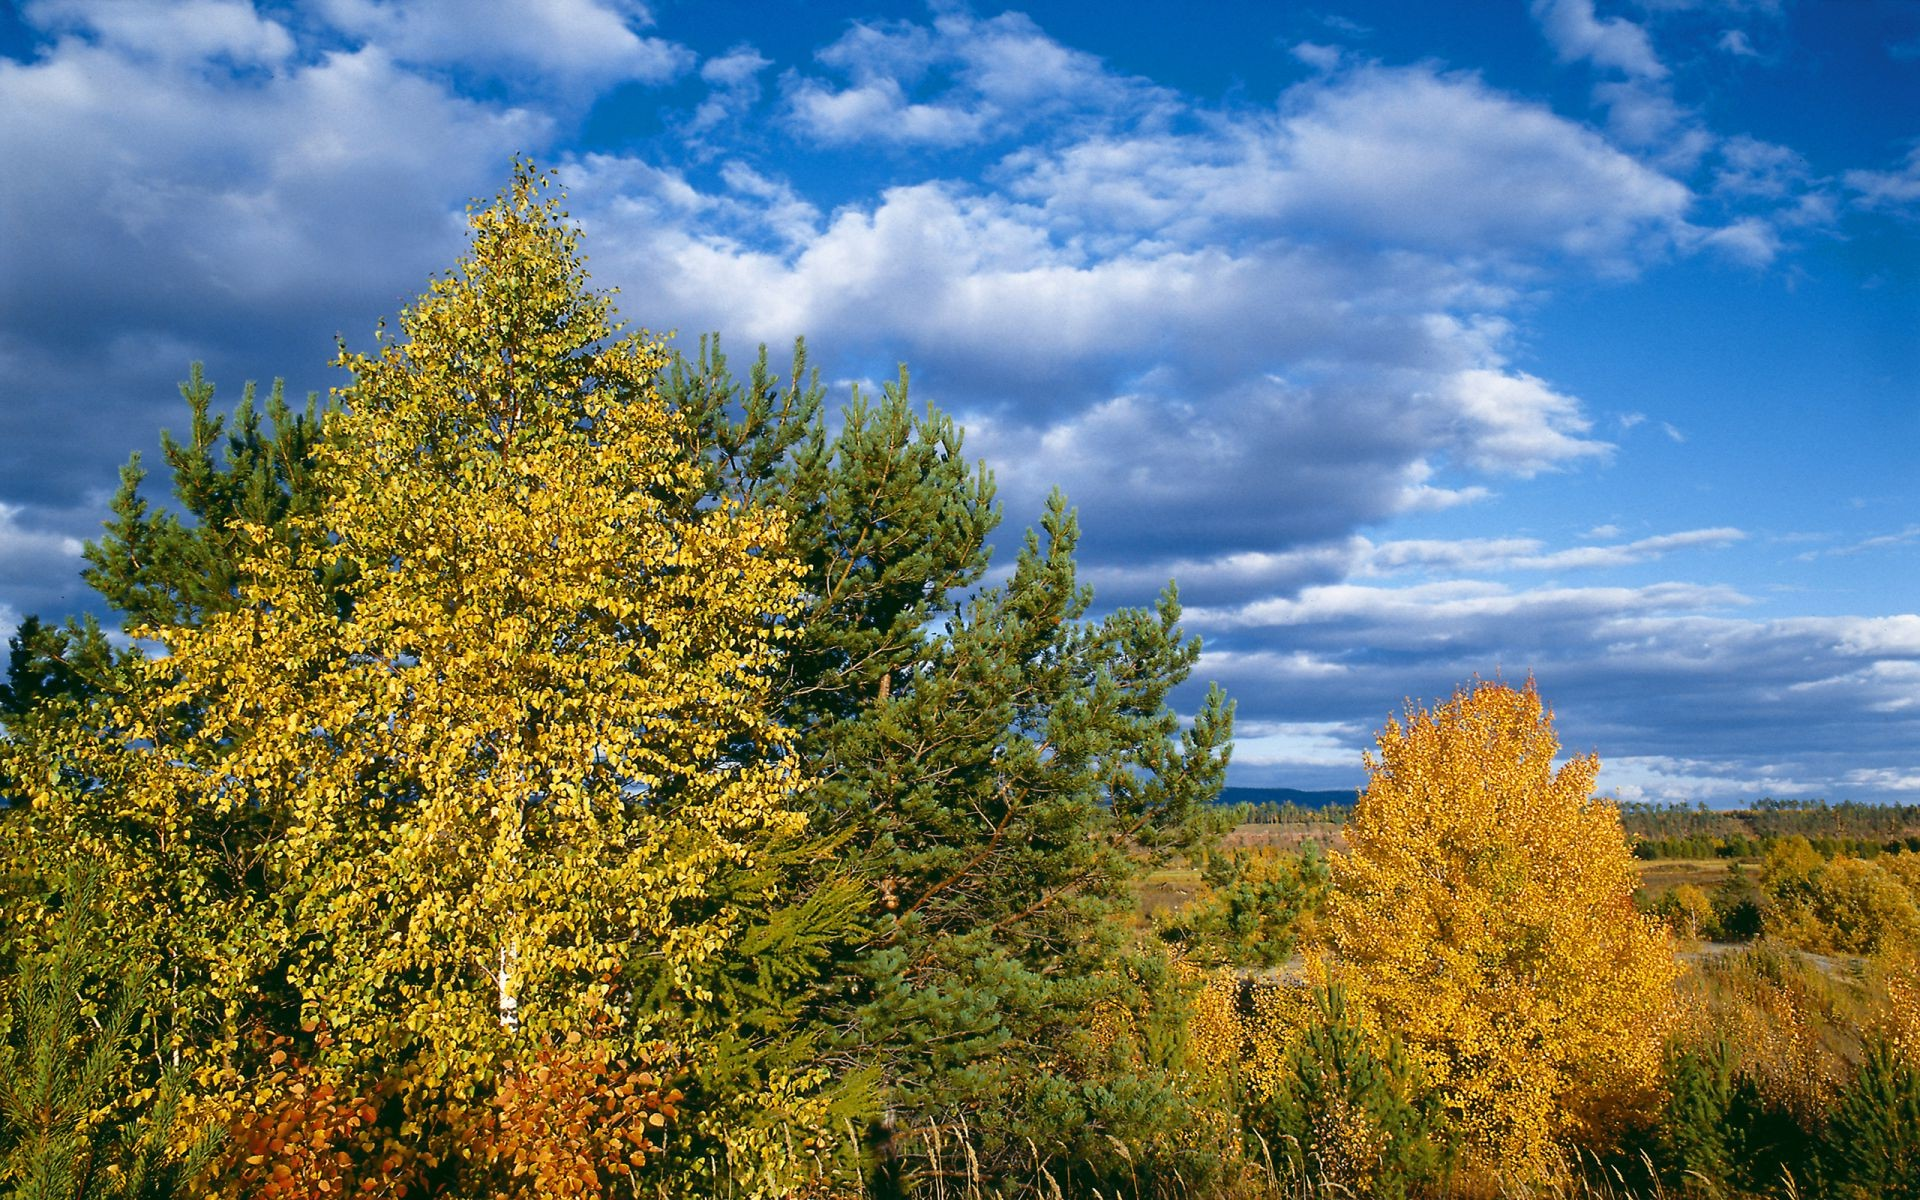 Sky clouds autumn nature trees yellow leaves scenery